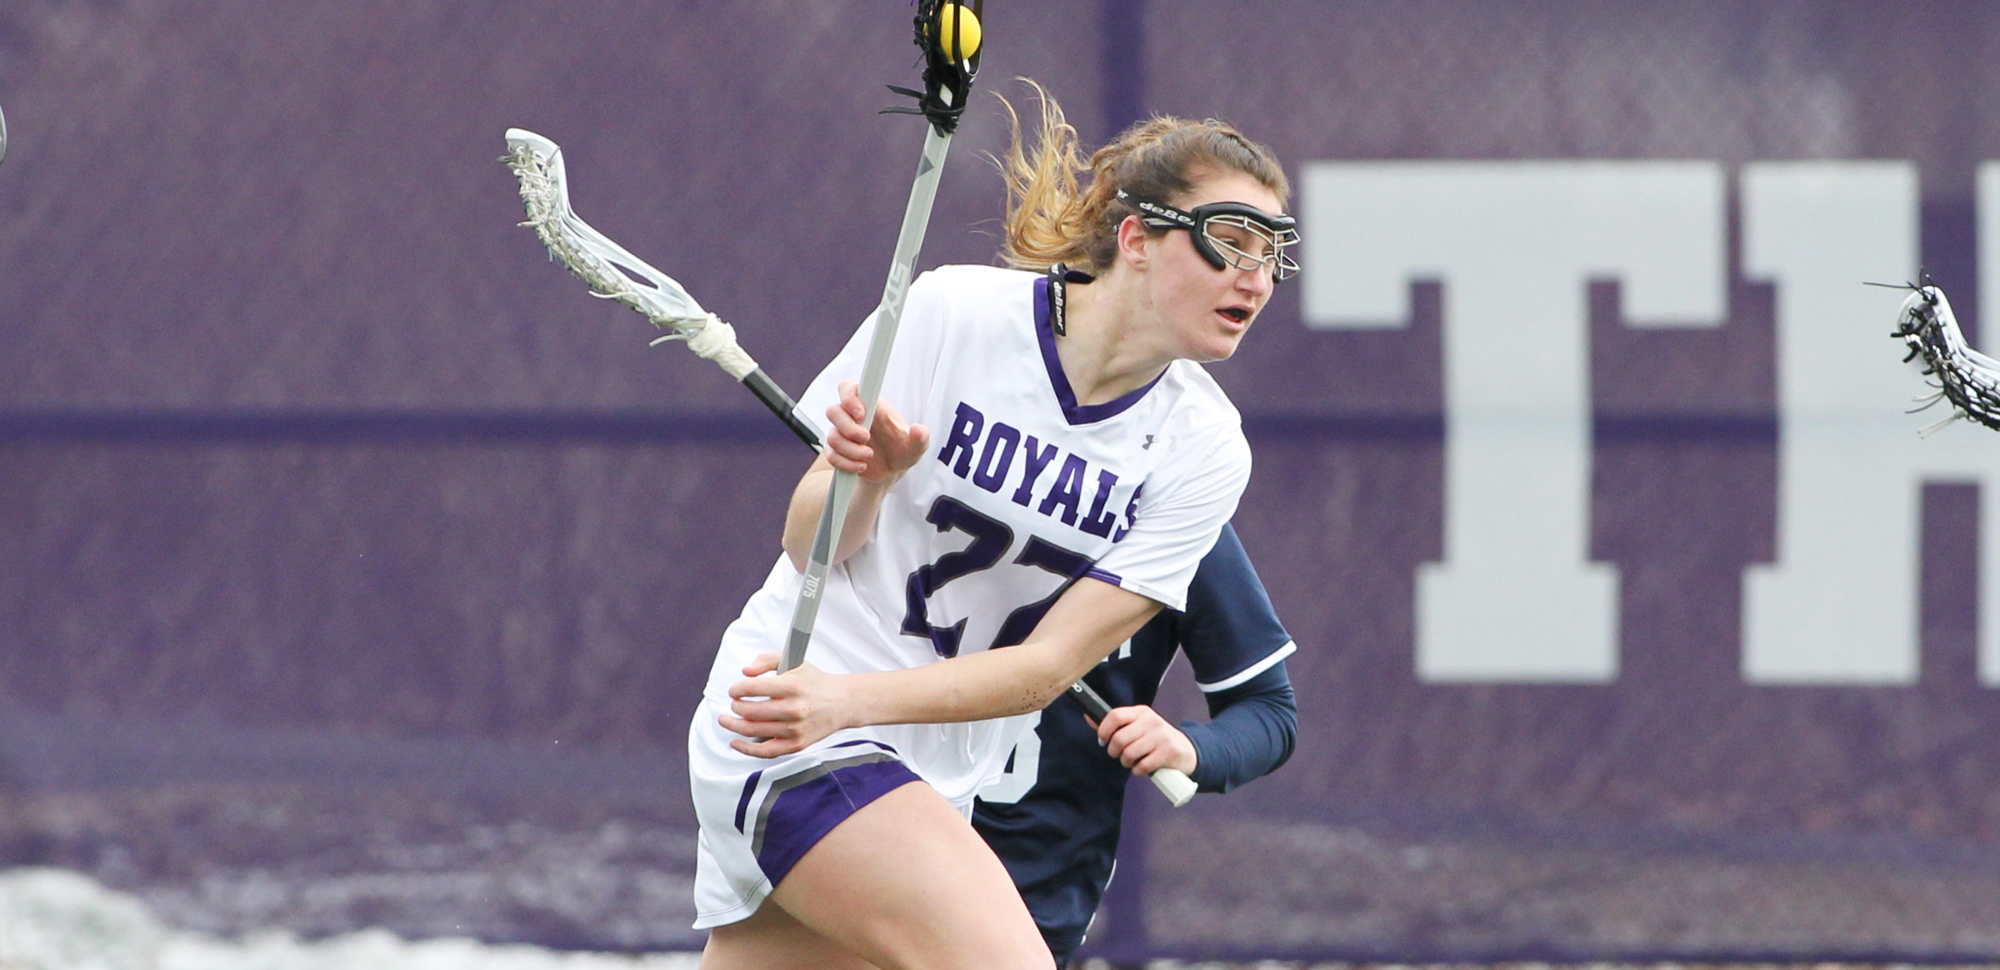 Junior Becca Russo posted game-highs of eight draw controls and five groundballs as Scranton opened conference play with a big win over Susquehanna on Saturday. © Photo by Timothy R. Dougherty / doubleeaglephotography.com